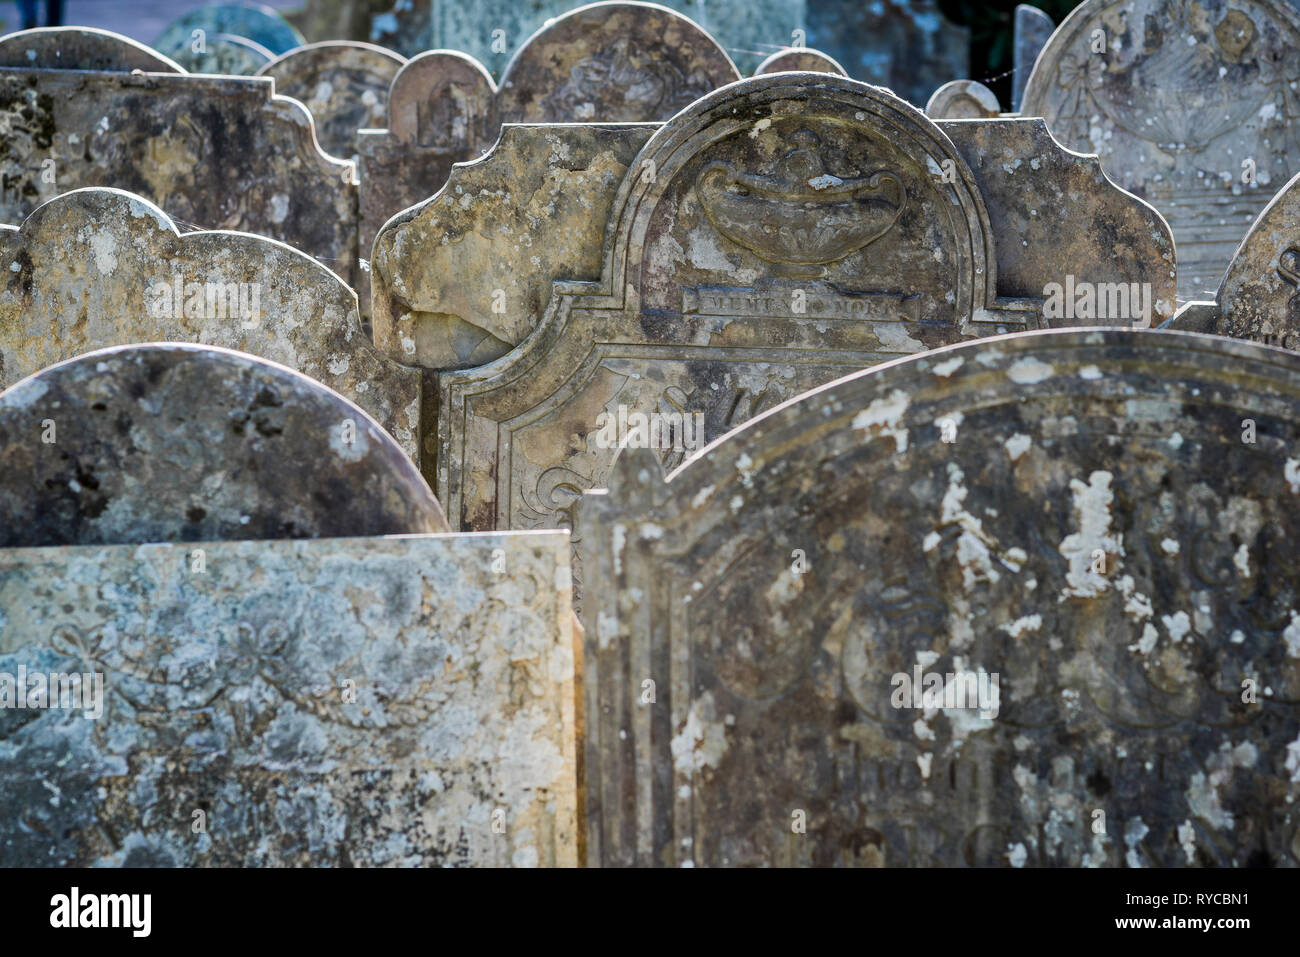 Old grave stones, one with the Latin inscription 'Memento mori' ('Remember the dead') - Stock Image